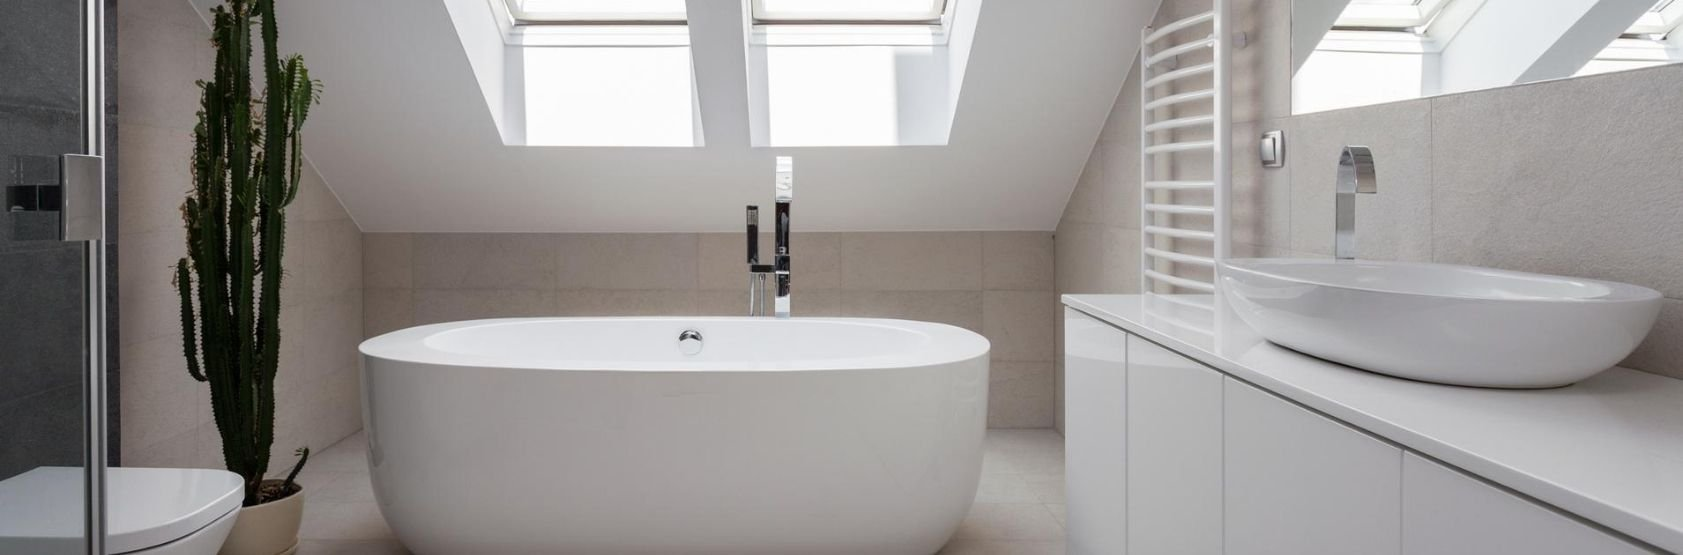 Bathroom-Fitting-Services-Dorset-Hampshire_7